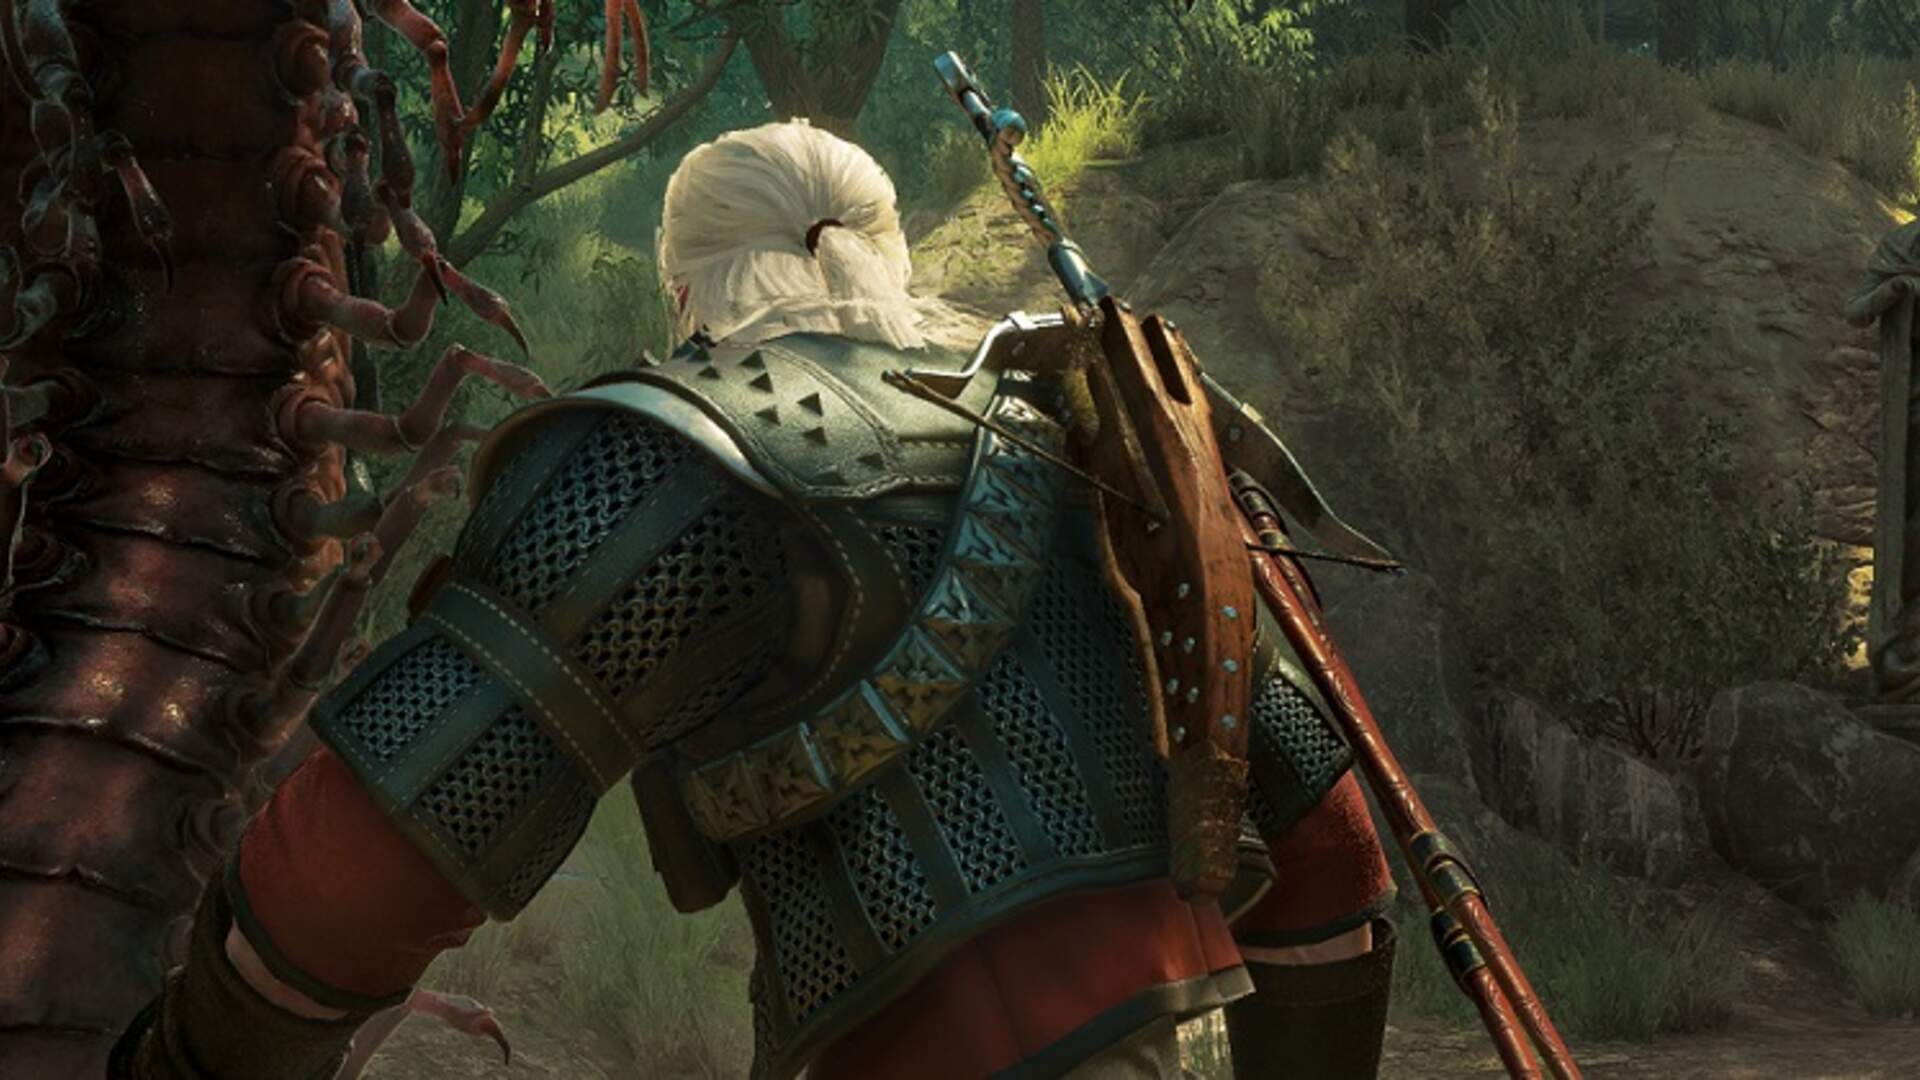 The Witcher 3 Grandmaster Wolf Gear - How to Get the Grandmaster Wolf Armor and Weapons